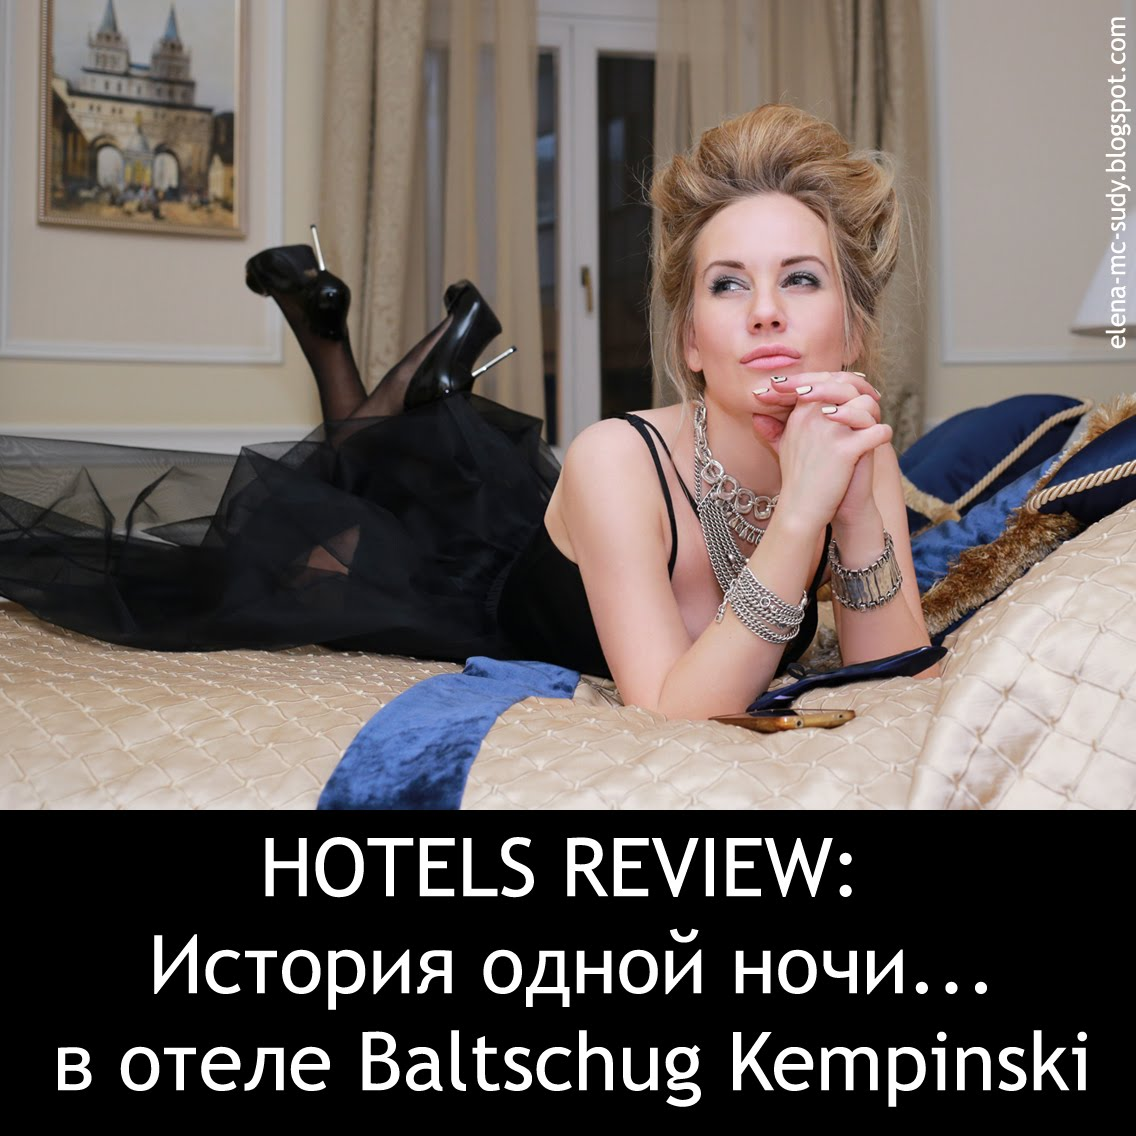 One night in hotel Baltschug Kempinski